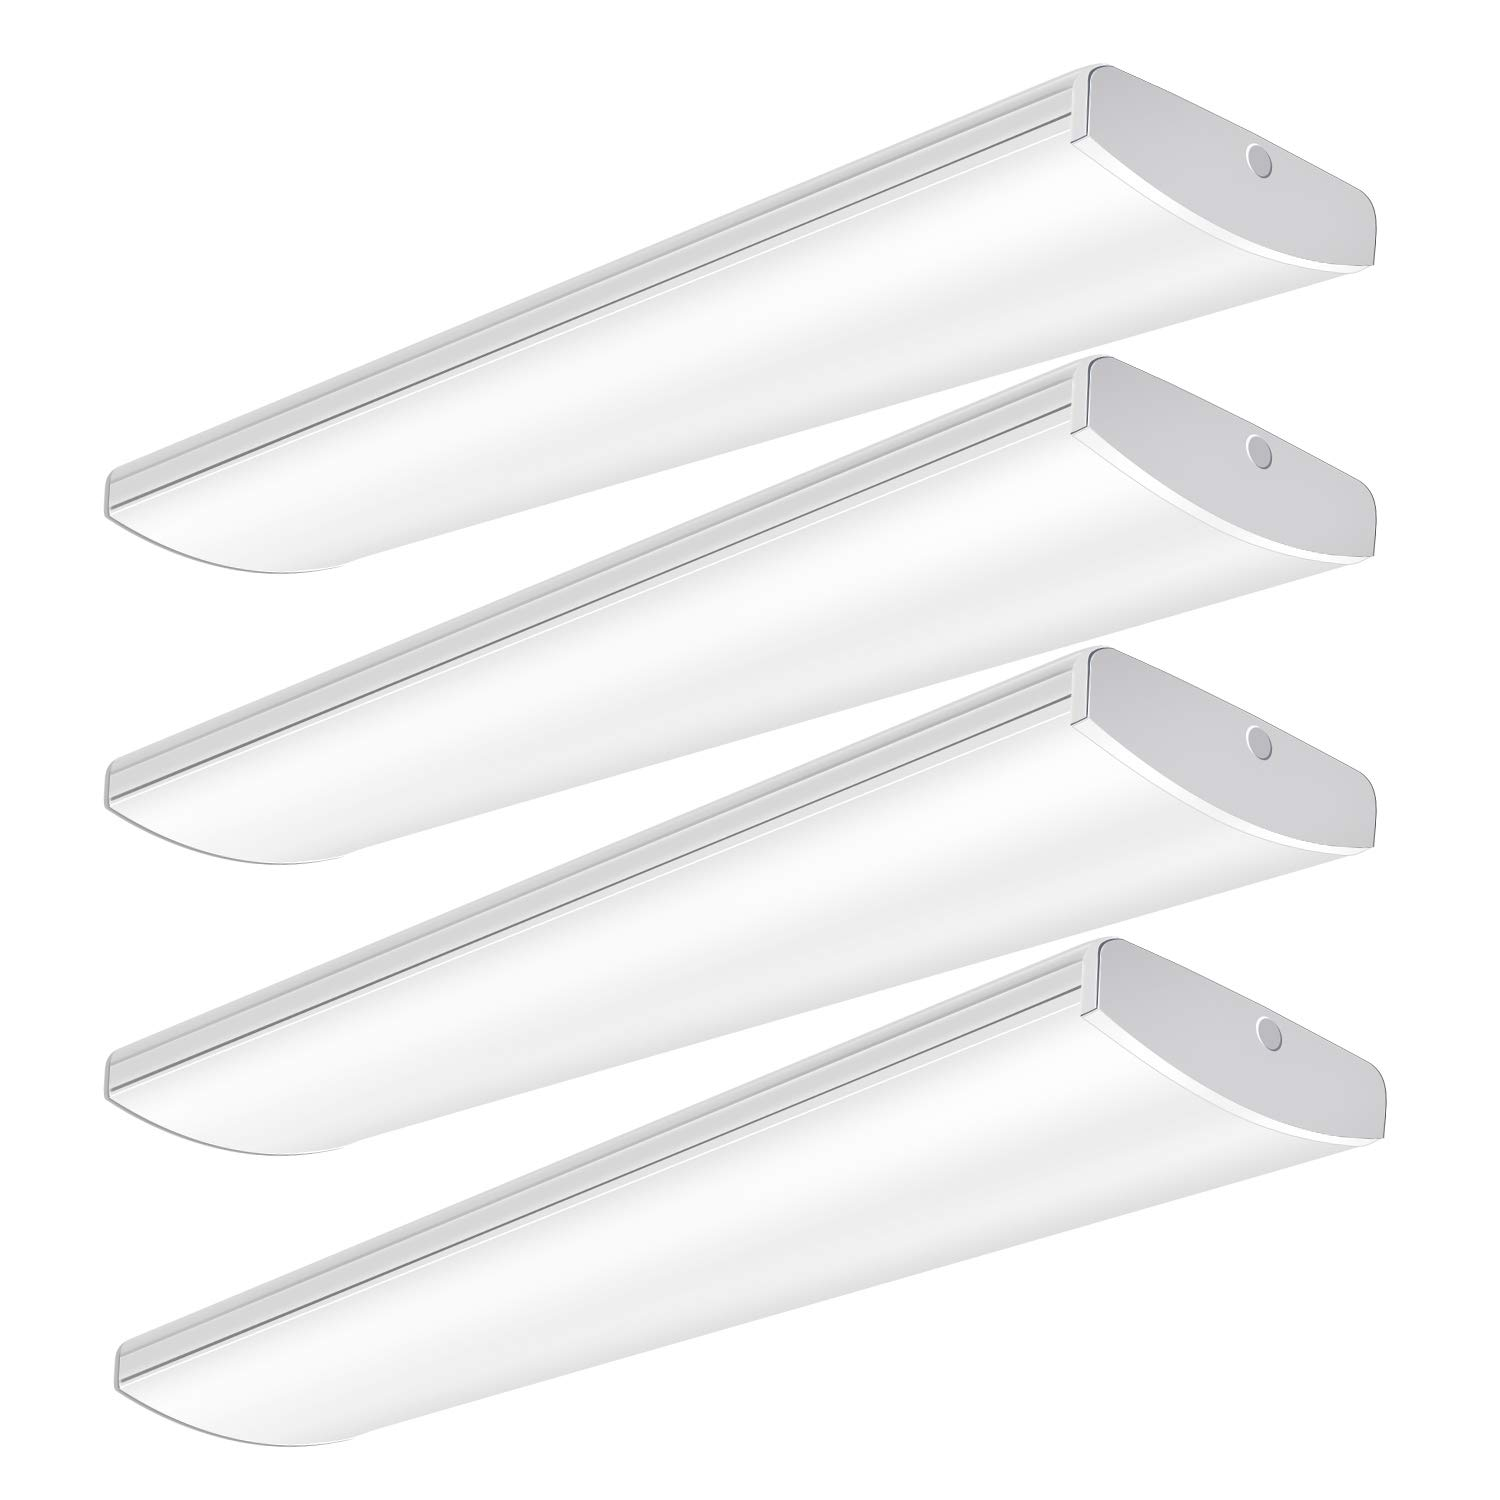 AntLux 72W Commercial LED Wraparound Fixture 4FT Office Ceiling Lighting, 8500 Lumens, 4000K, 4 Foot Low Bay Flush Mount Garage Shop Lights, Integrated Wrap Light, Fluorescent Tube Replacement, 4 Pack